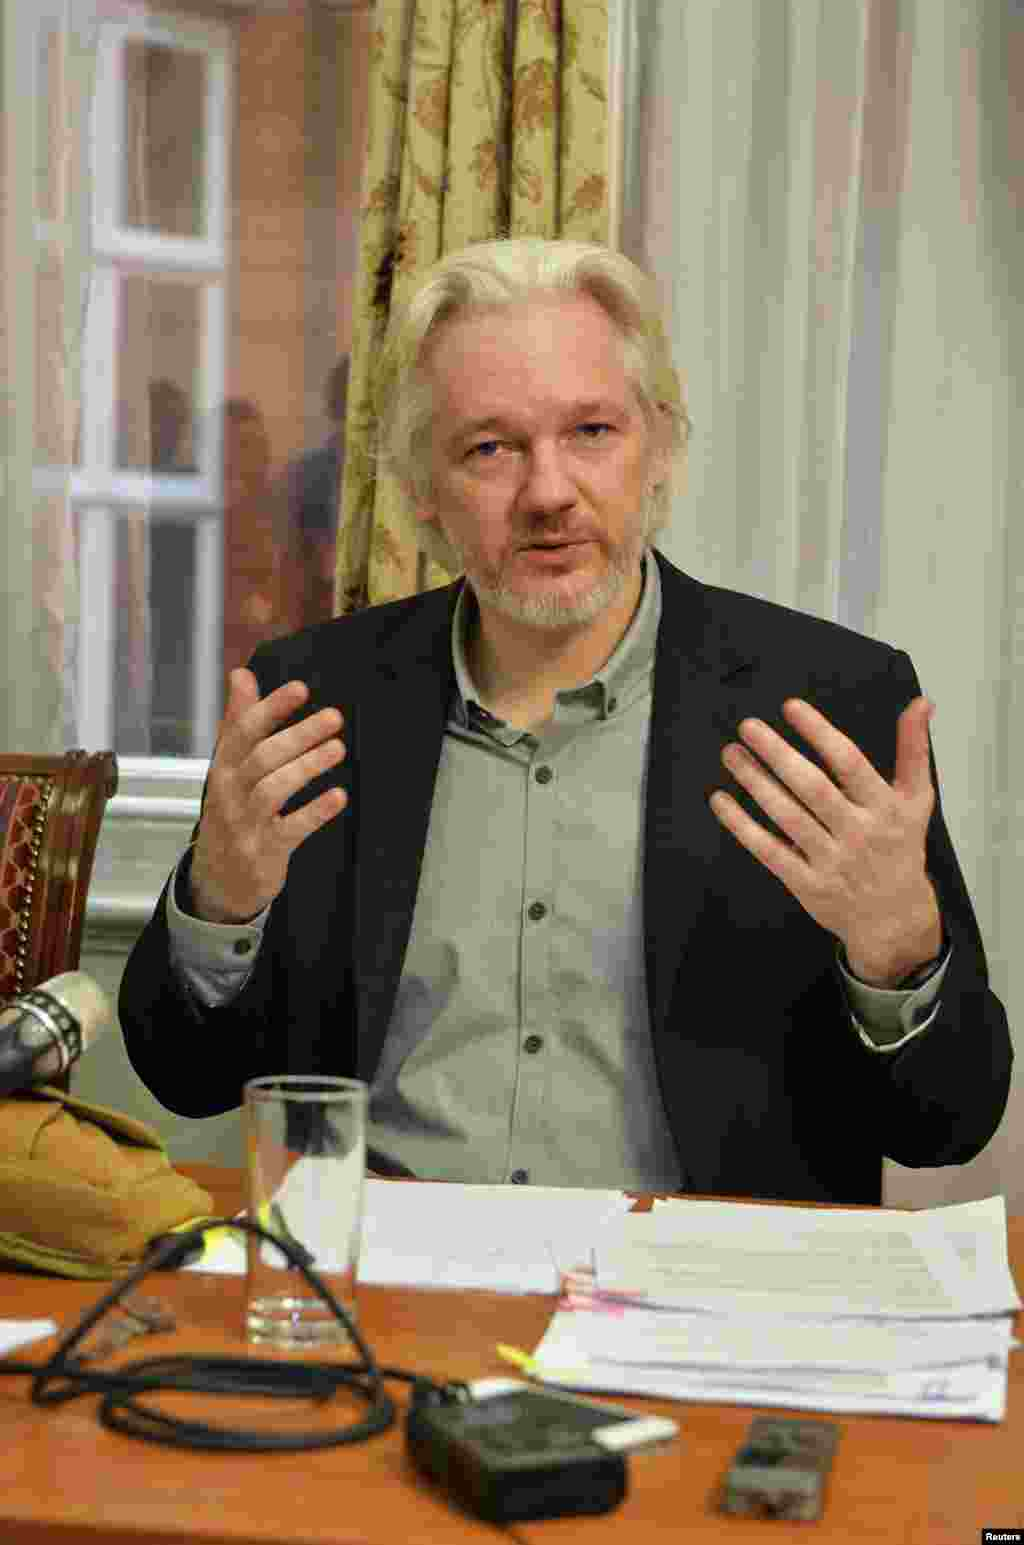 WikiLeaks founder Julian Assange gestures during a news conference at the Ecuadorian embassy, in central London, Aug. 18, 2014.